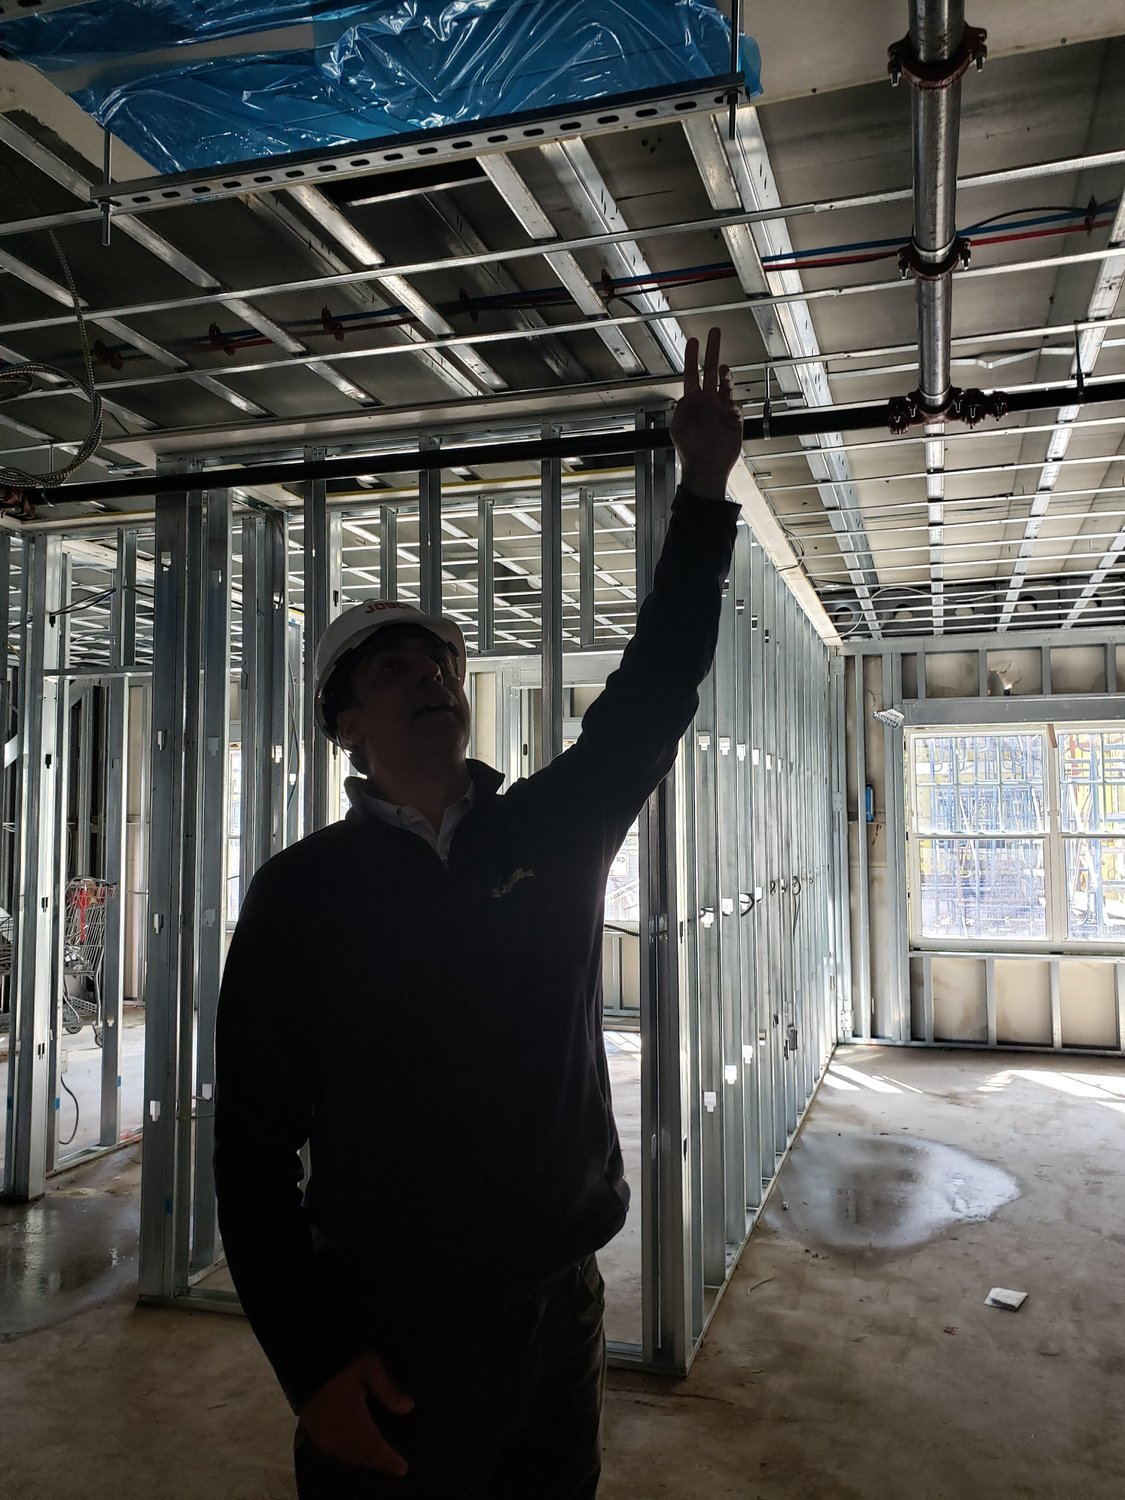 Jobco's project manager, Spiros Triantafyllou, pointed at the central heating and air conditioning in one of the apartments under construction at the new Moxie Rigby in Freeport.